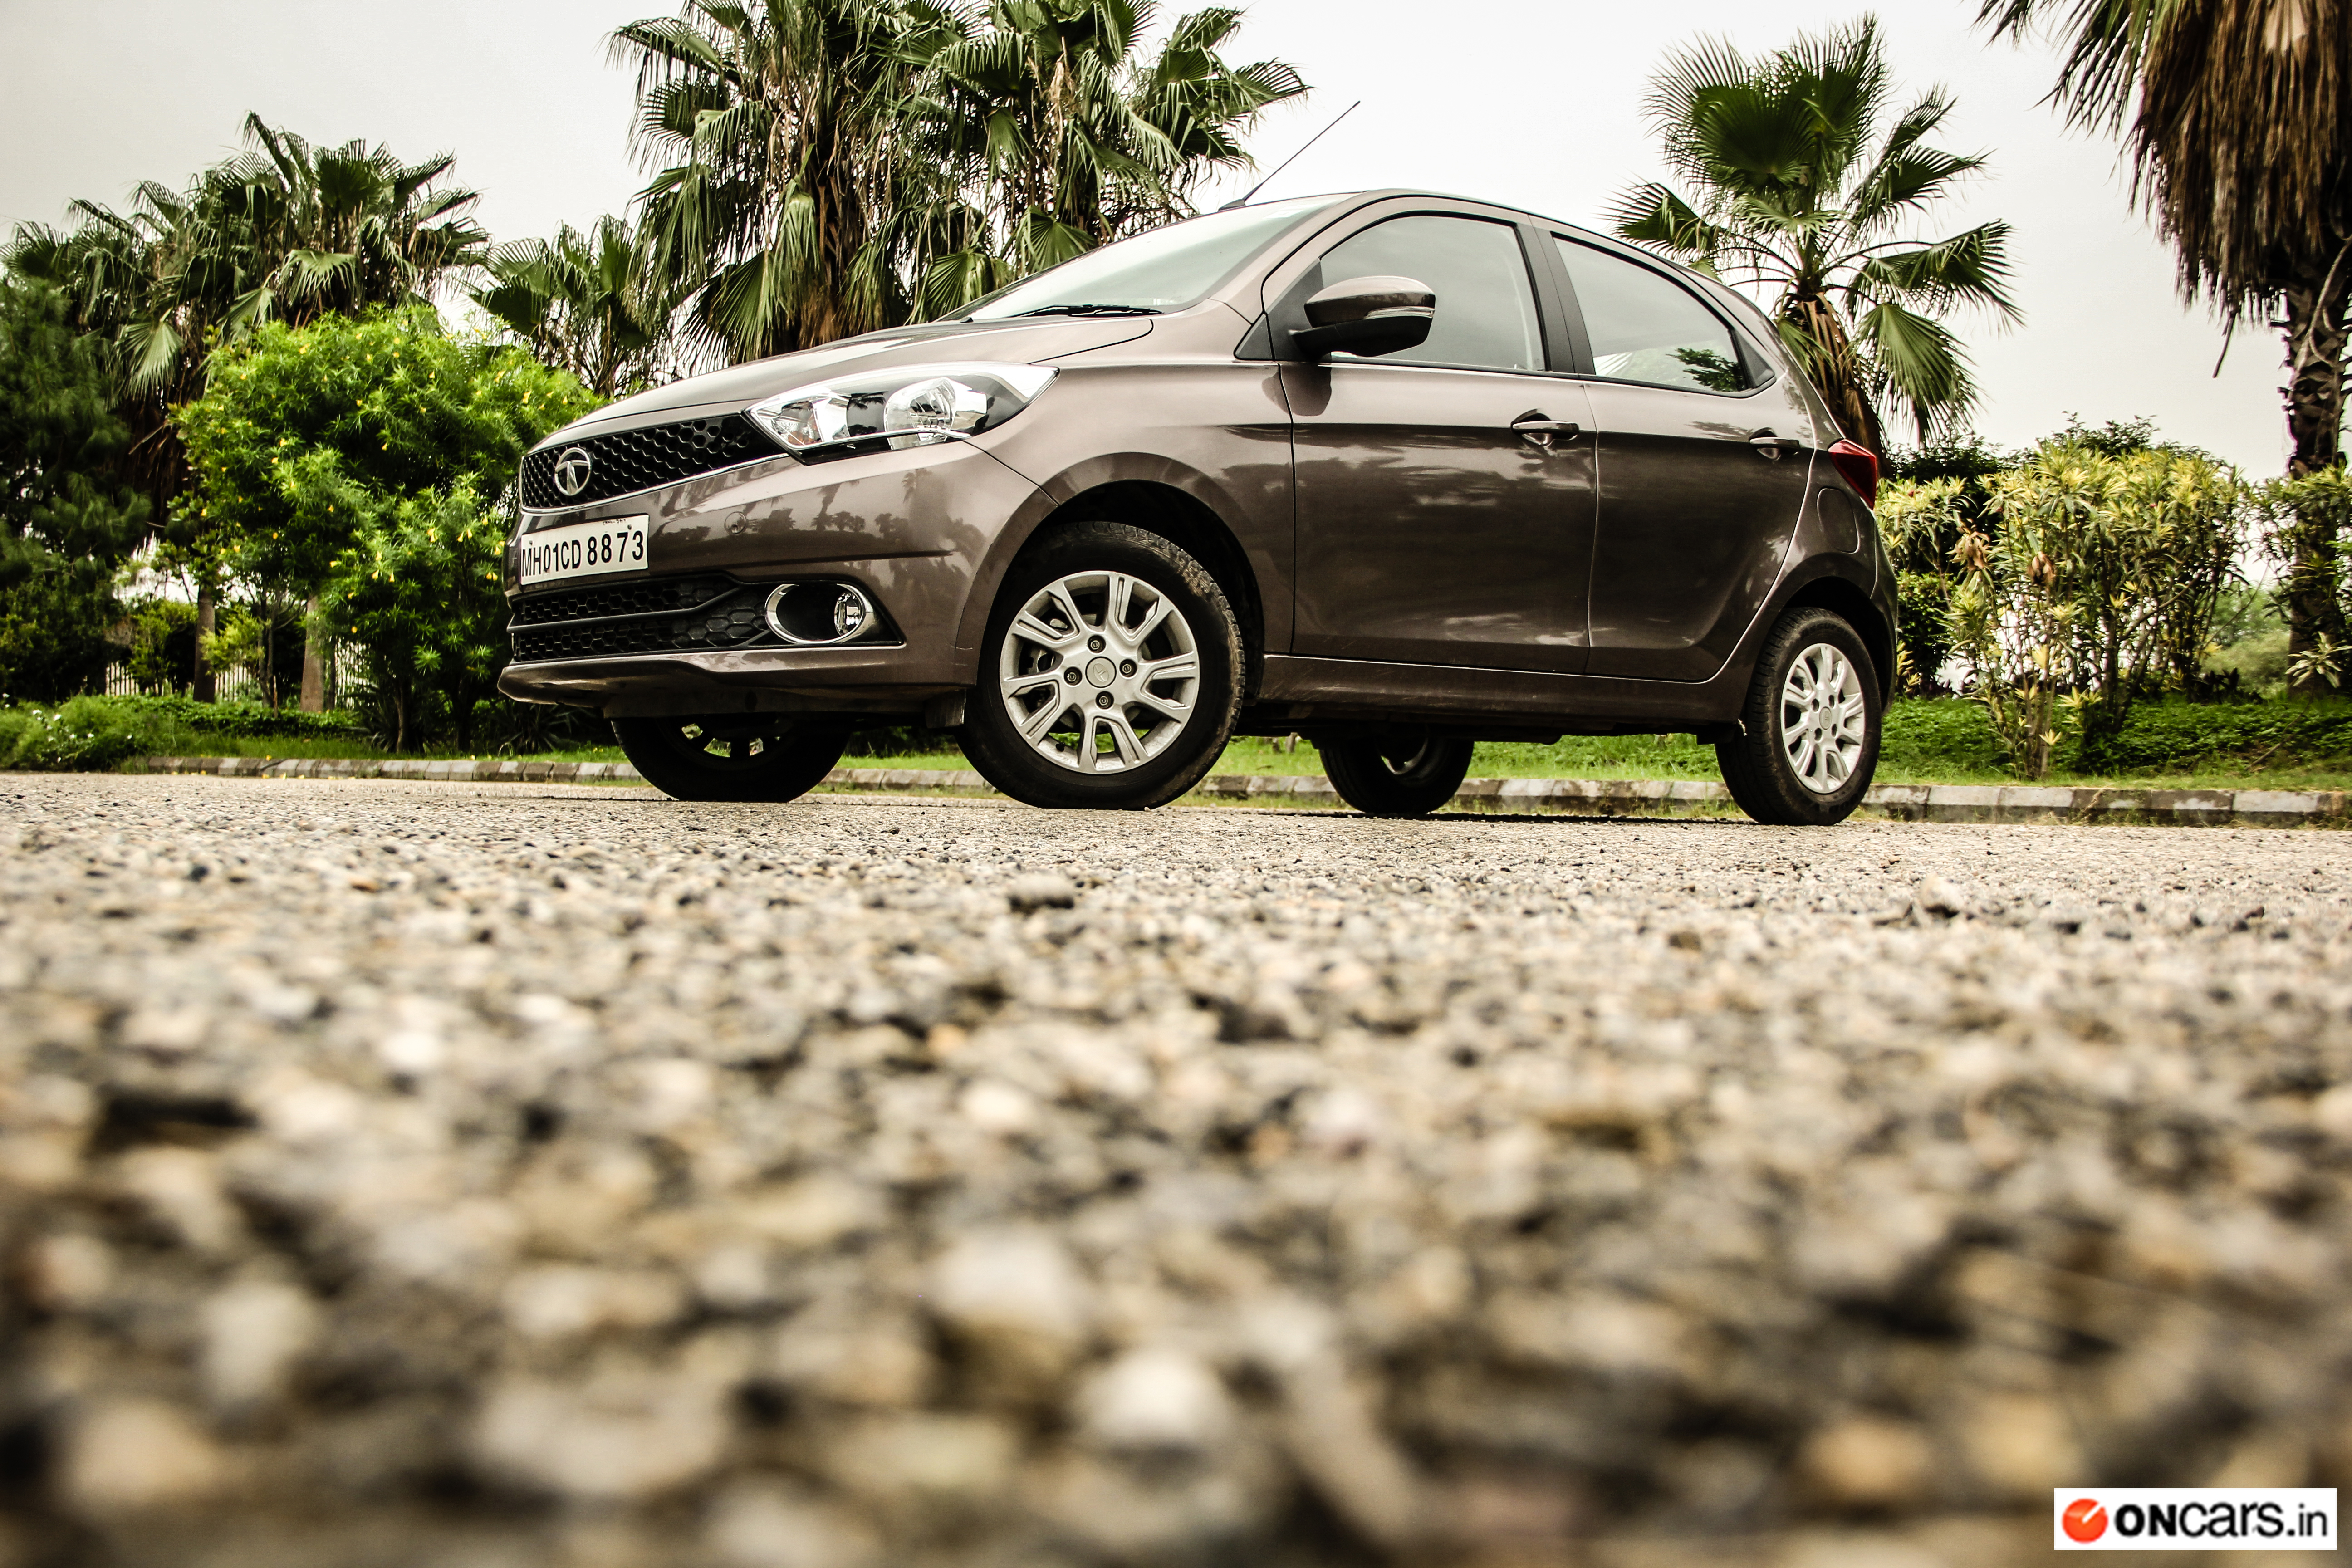 Tata Tiago - Simply Surprising (Expert Review)